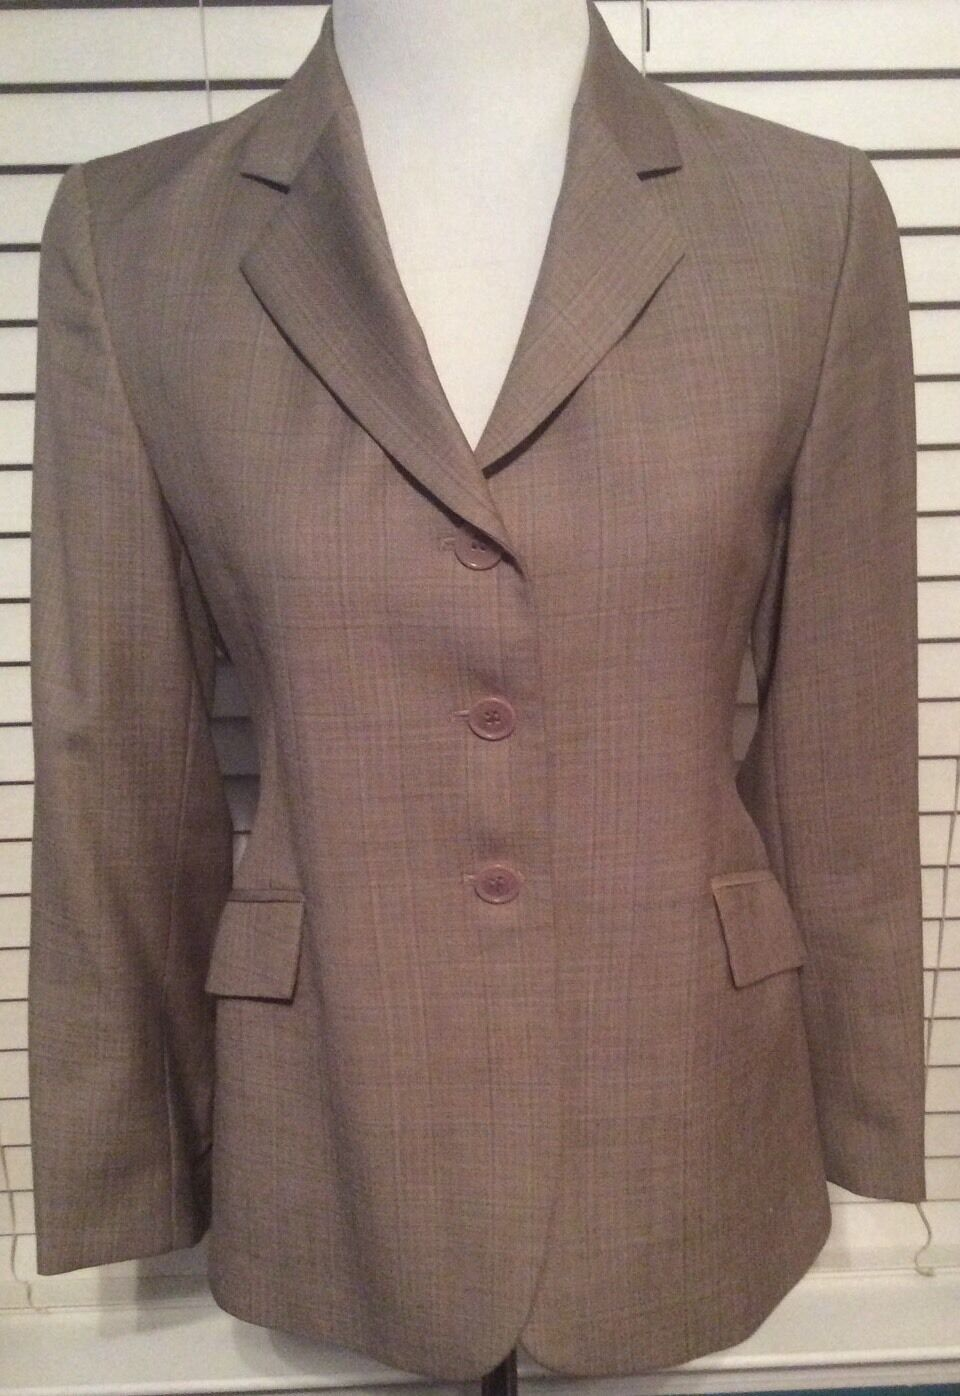 R.J. Classics  Platinum Show Coat, Girls Size 18R  best prices and freshest styles